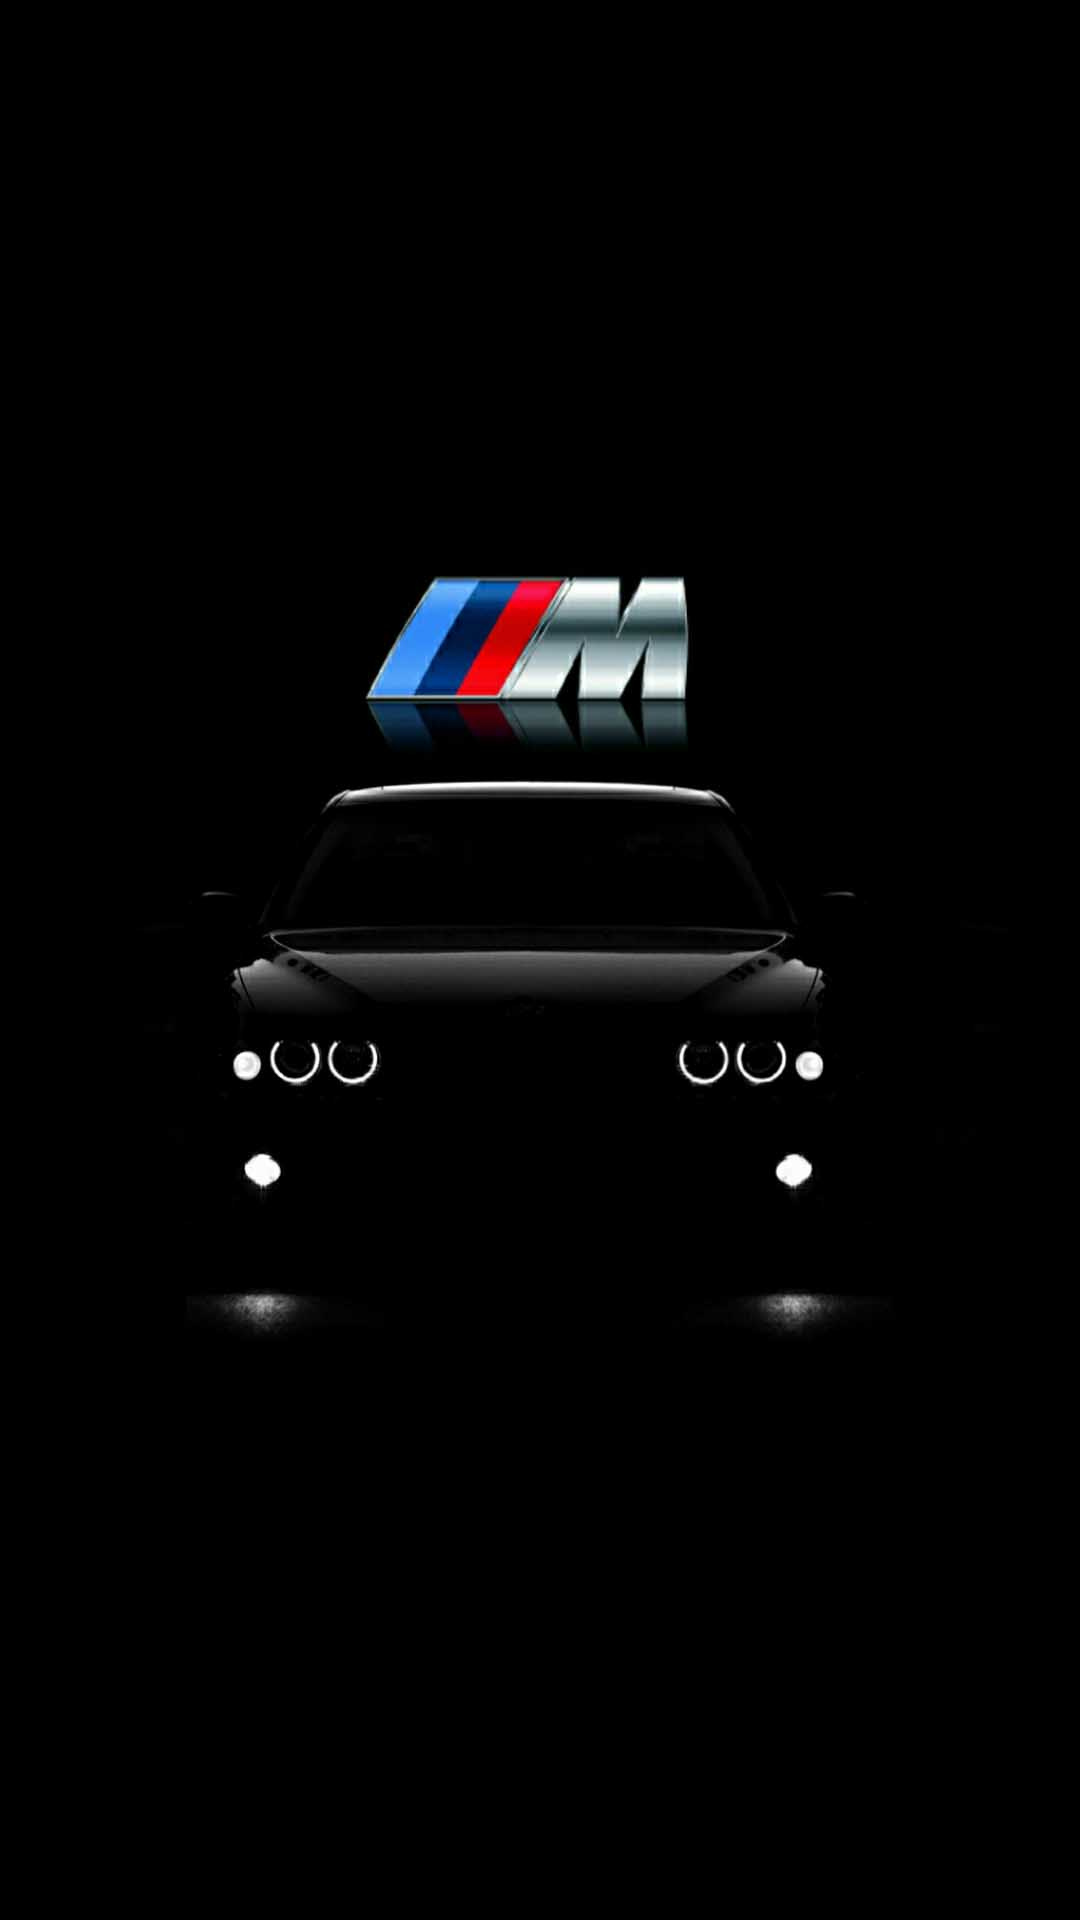 Black And White Wallpaper Iphone 6 Plus Bmw Wallpaper For Iphone X 8 7 6 Free Download On